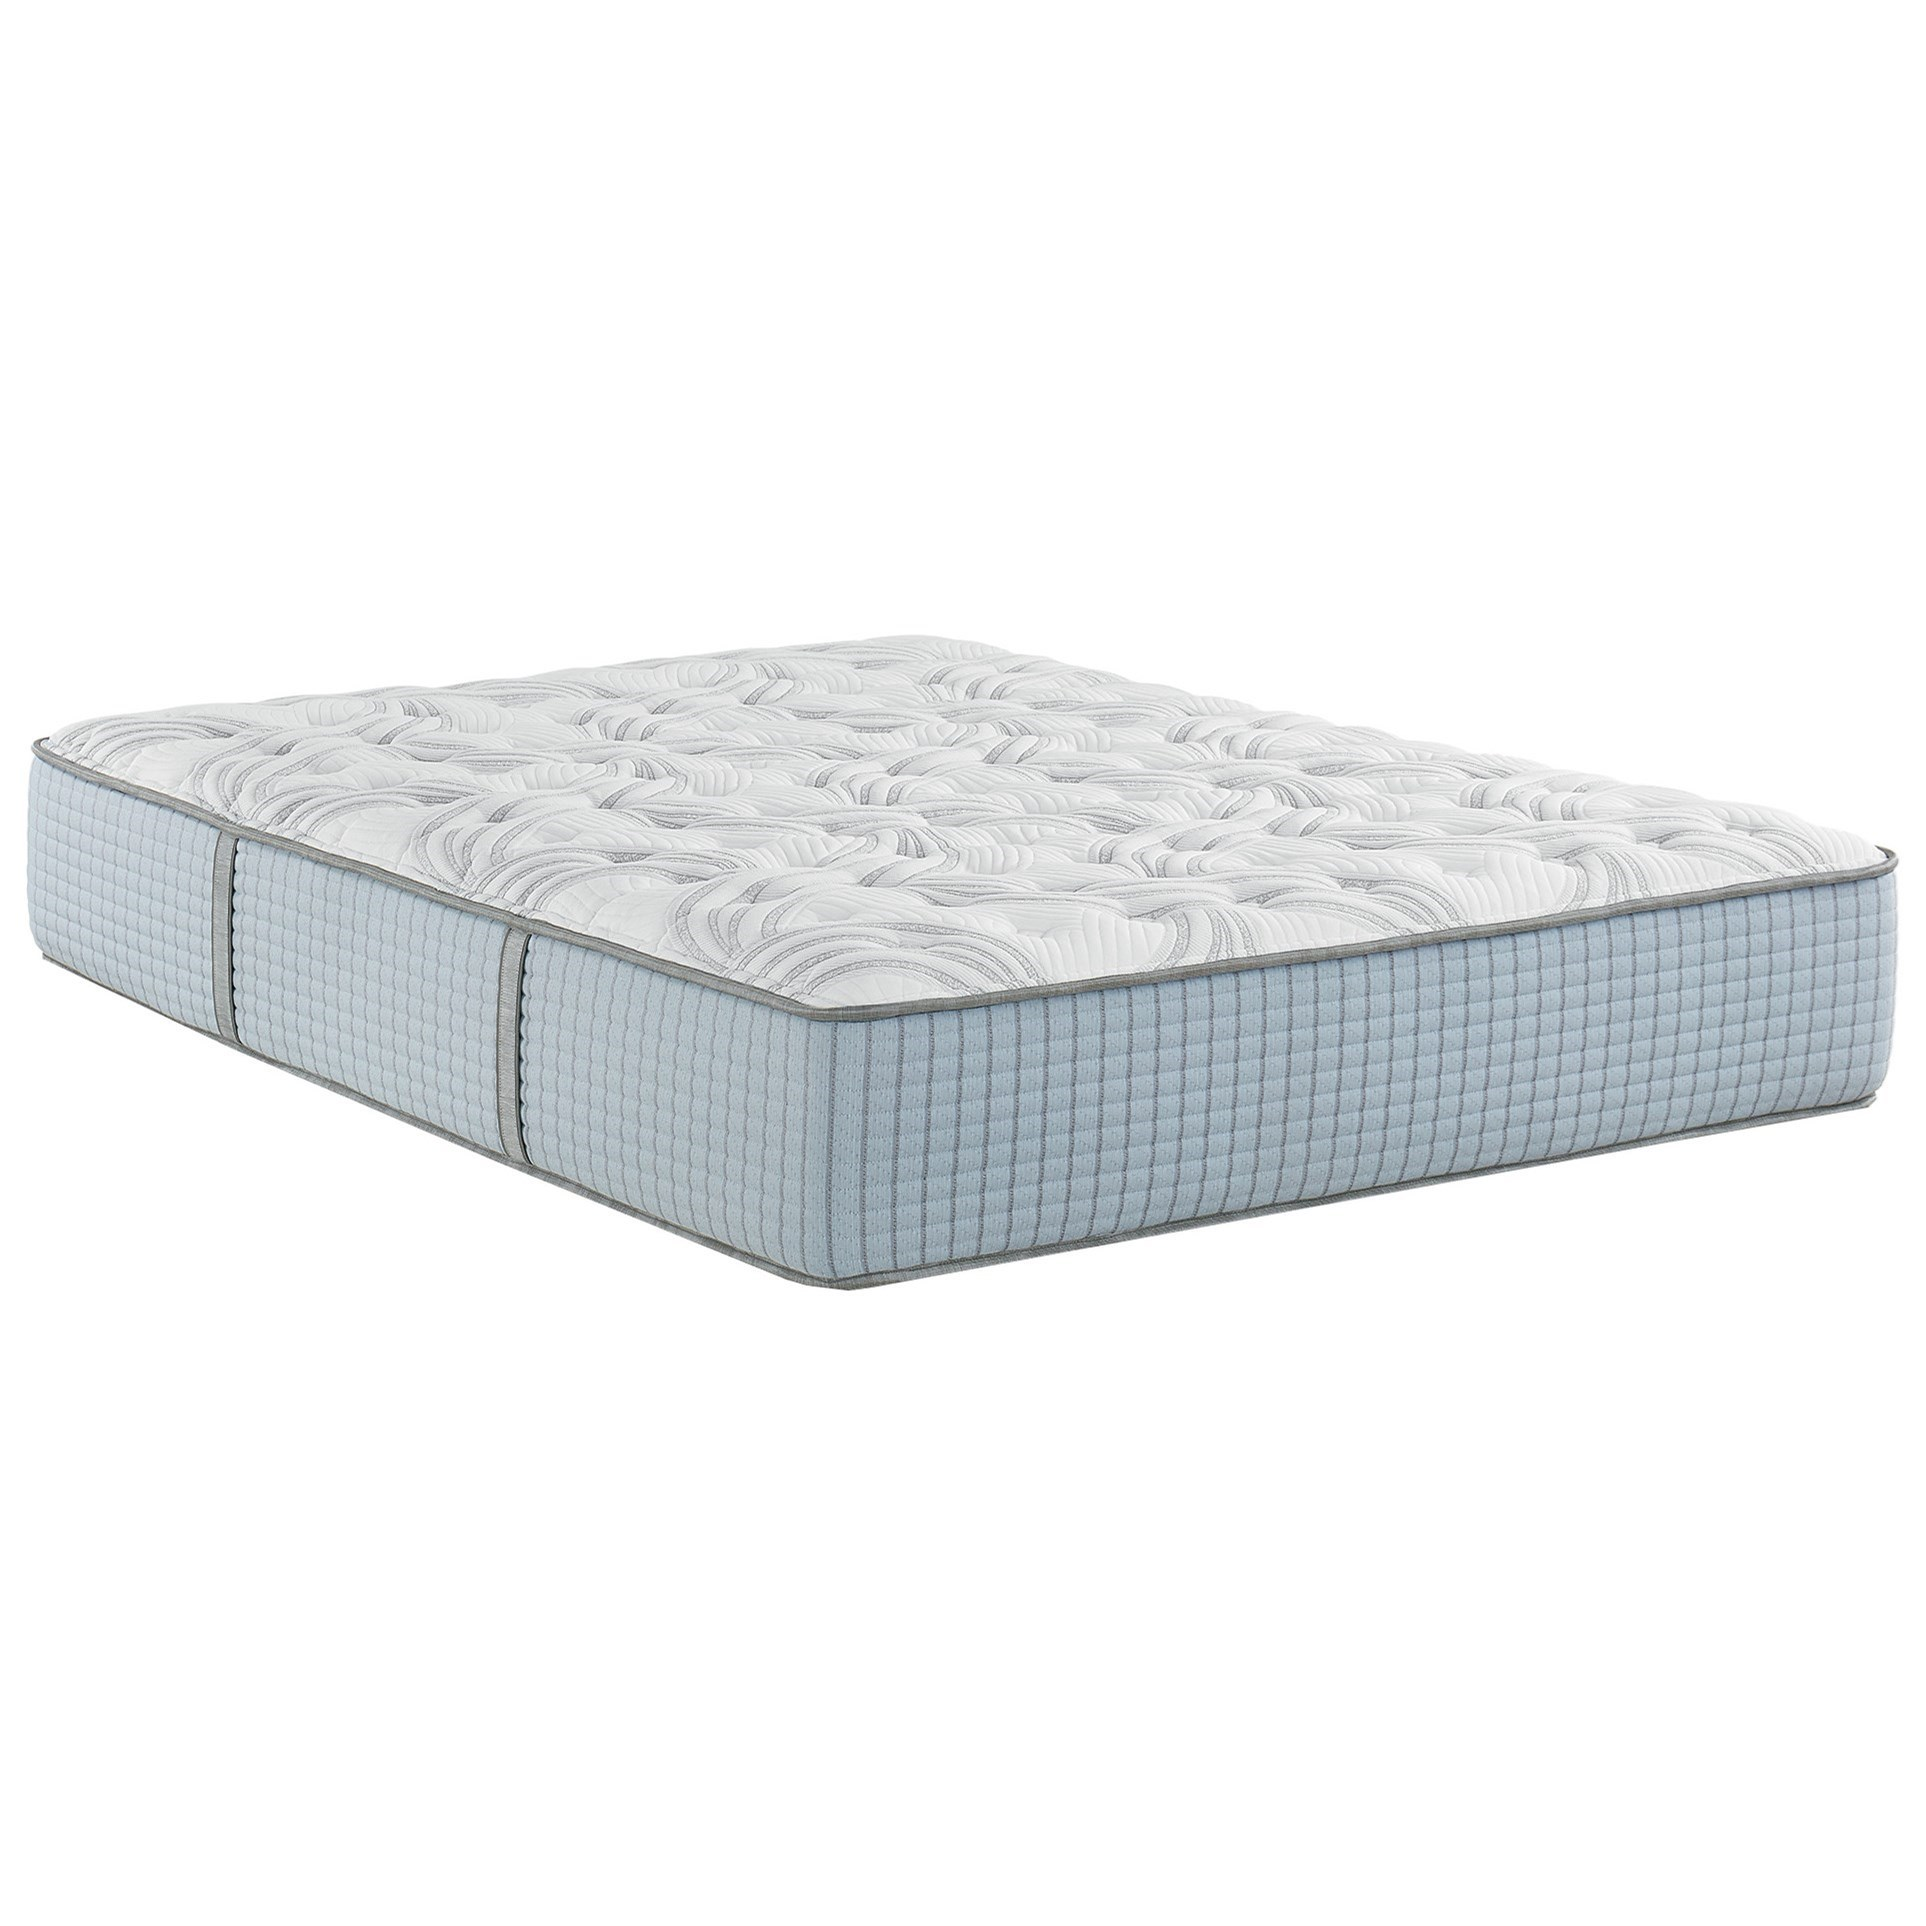 Cal King Firm Hybrid Mattress